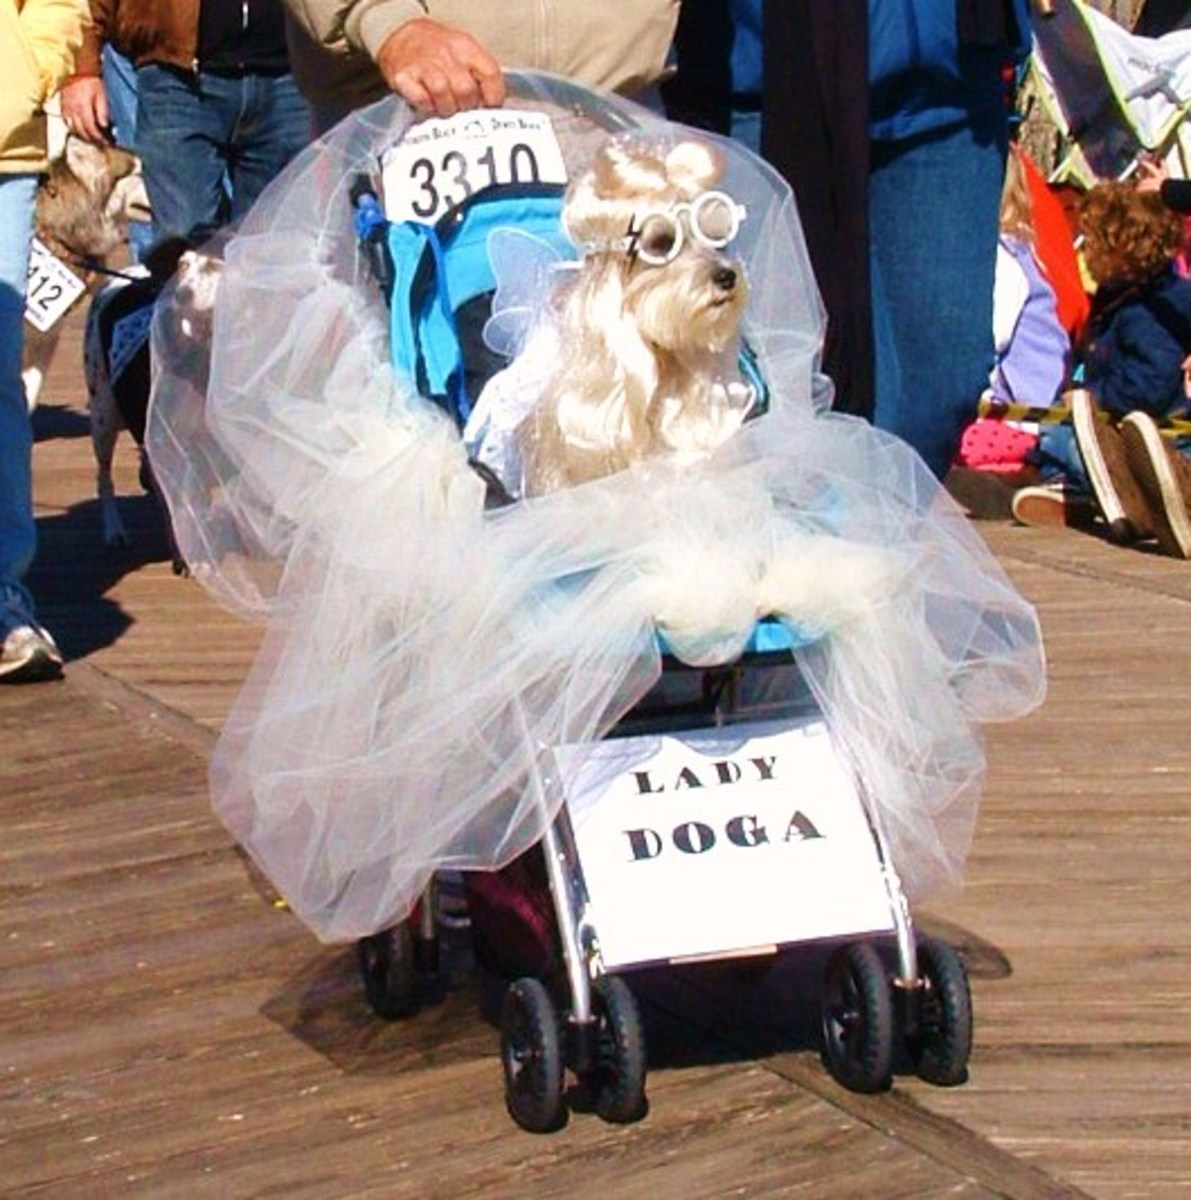 Dog in Lady Gaga costume in Pet Parade on Boardwalk.